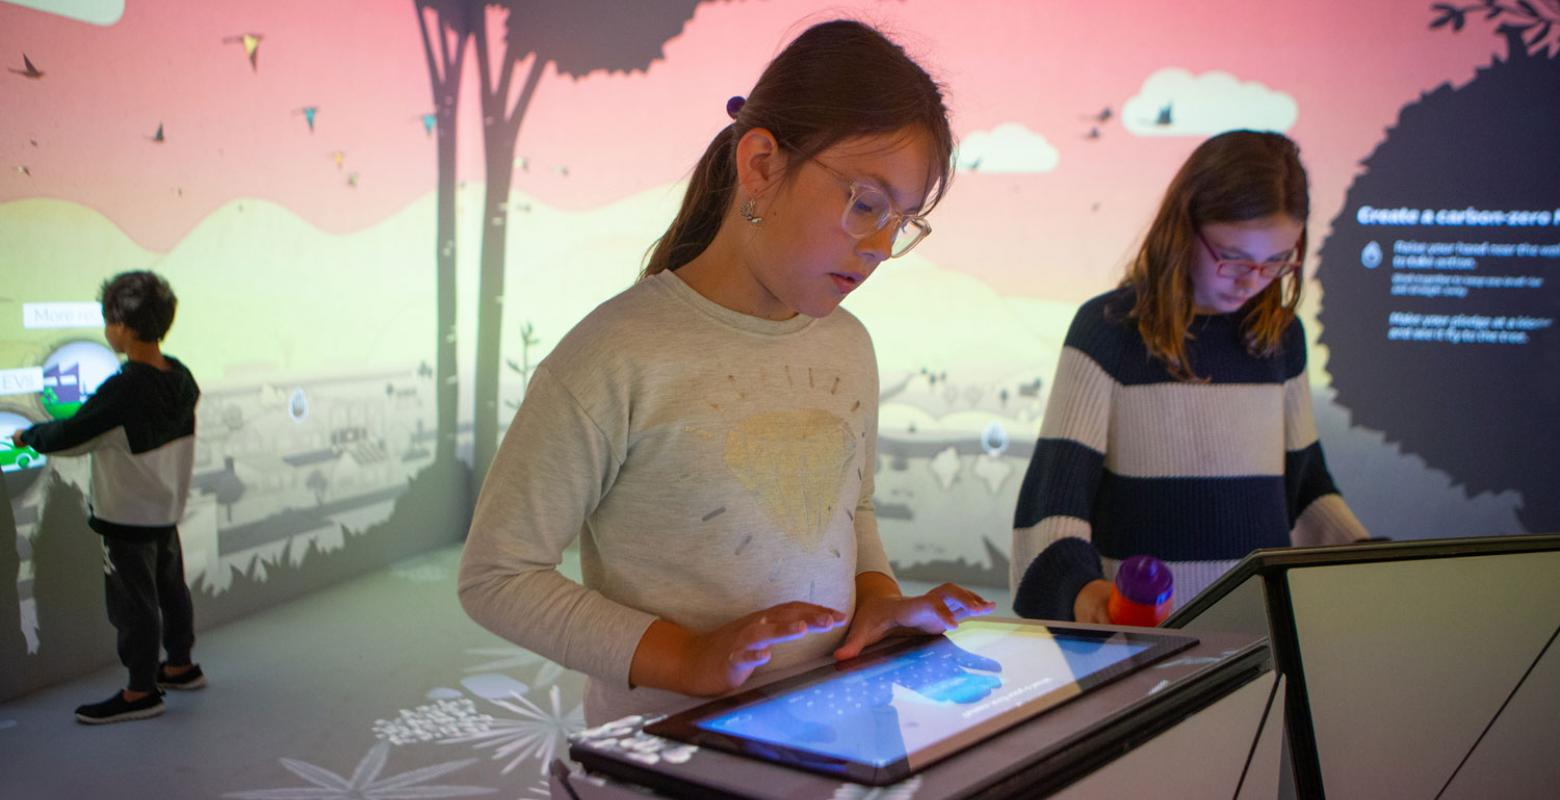 Children play with a digital interactive